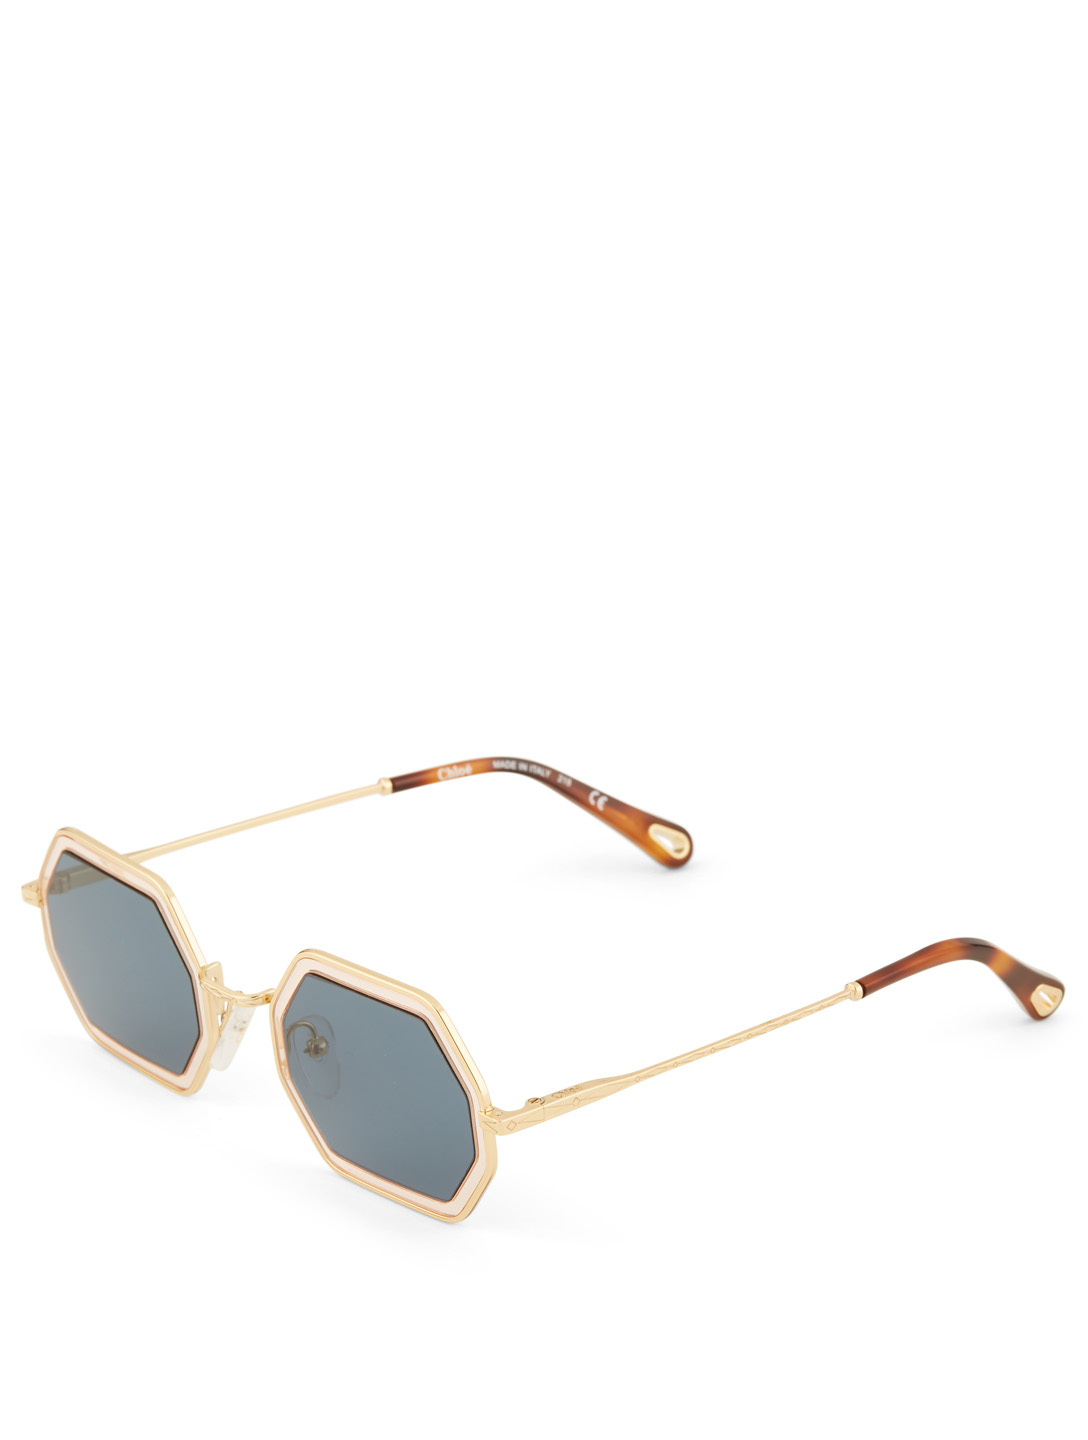 9cc44fee3 ... CHLOÉ Tally Small Geometric Sunglasses Women's Blue